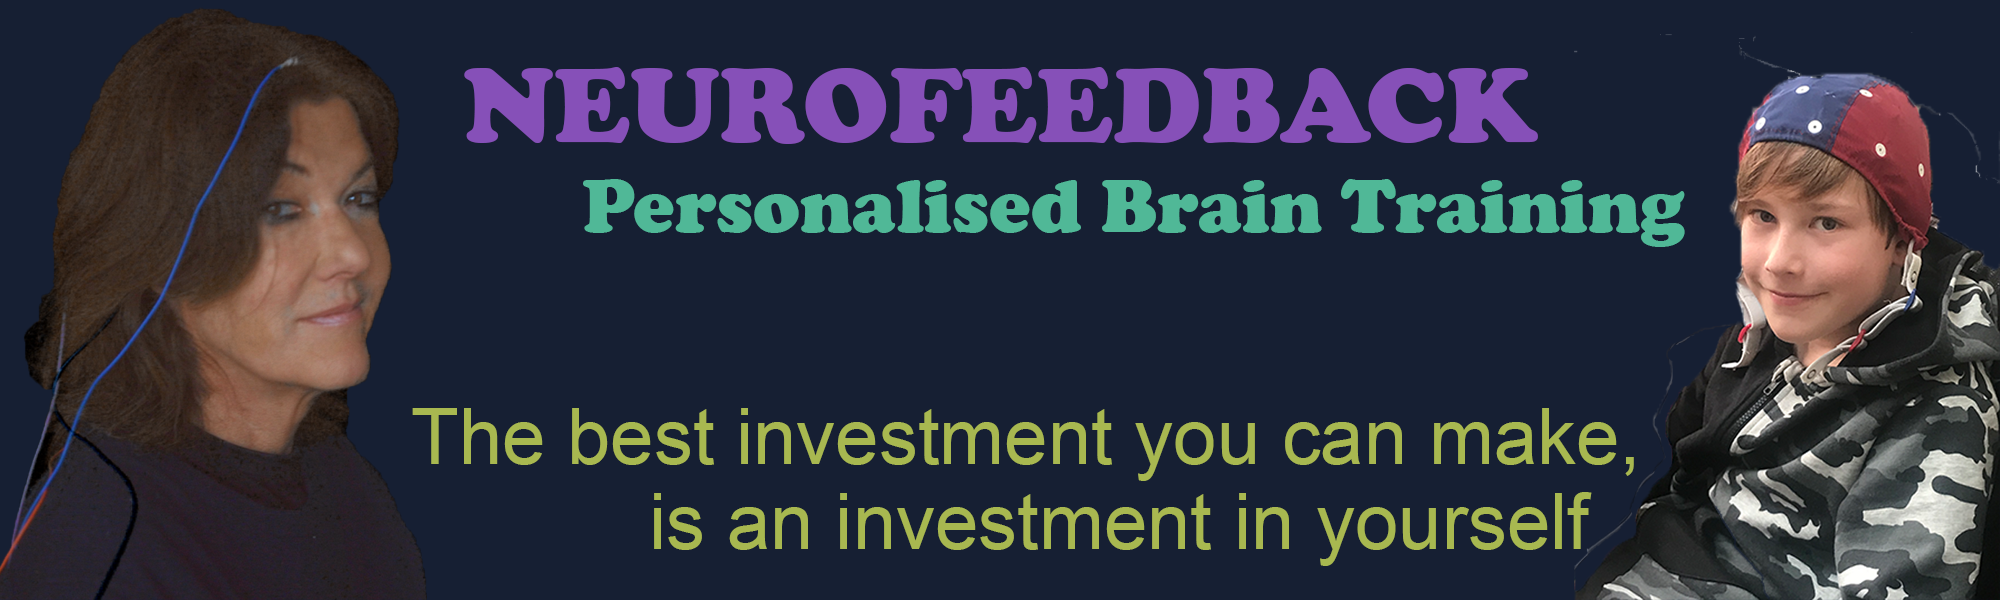 Neurofeedback Personalised Brain Training: The best investment you can make is an investment in yourself